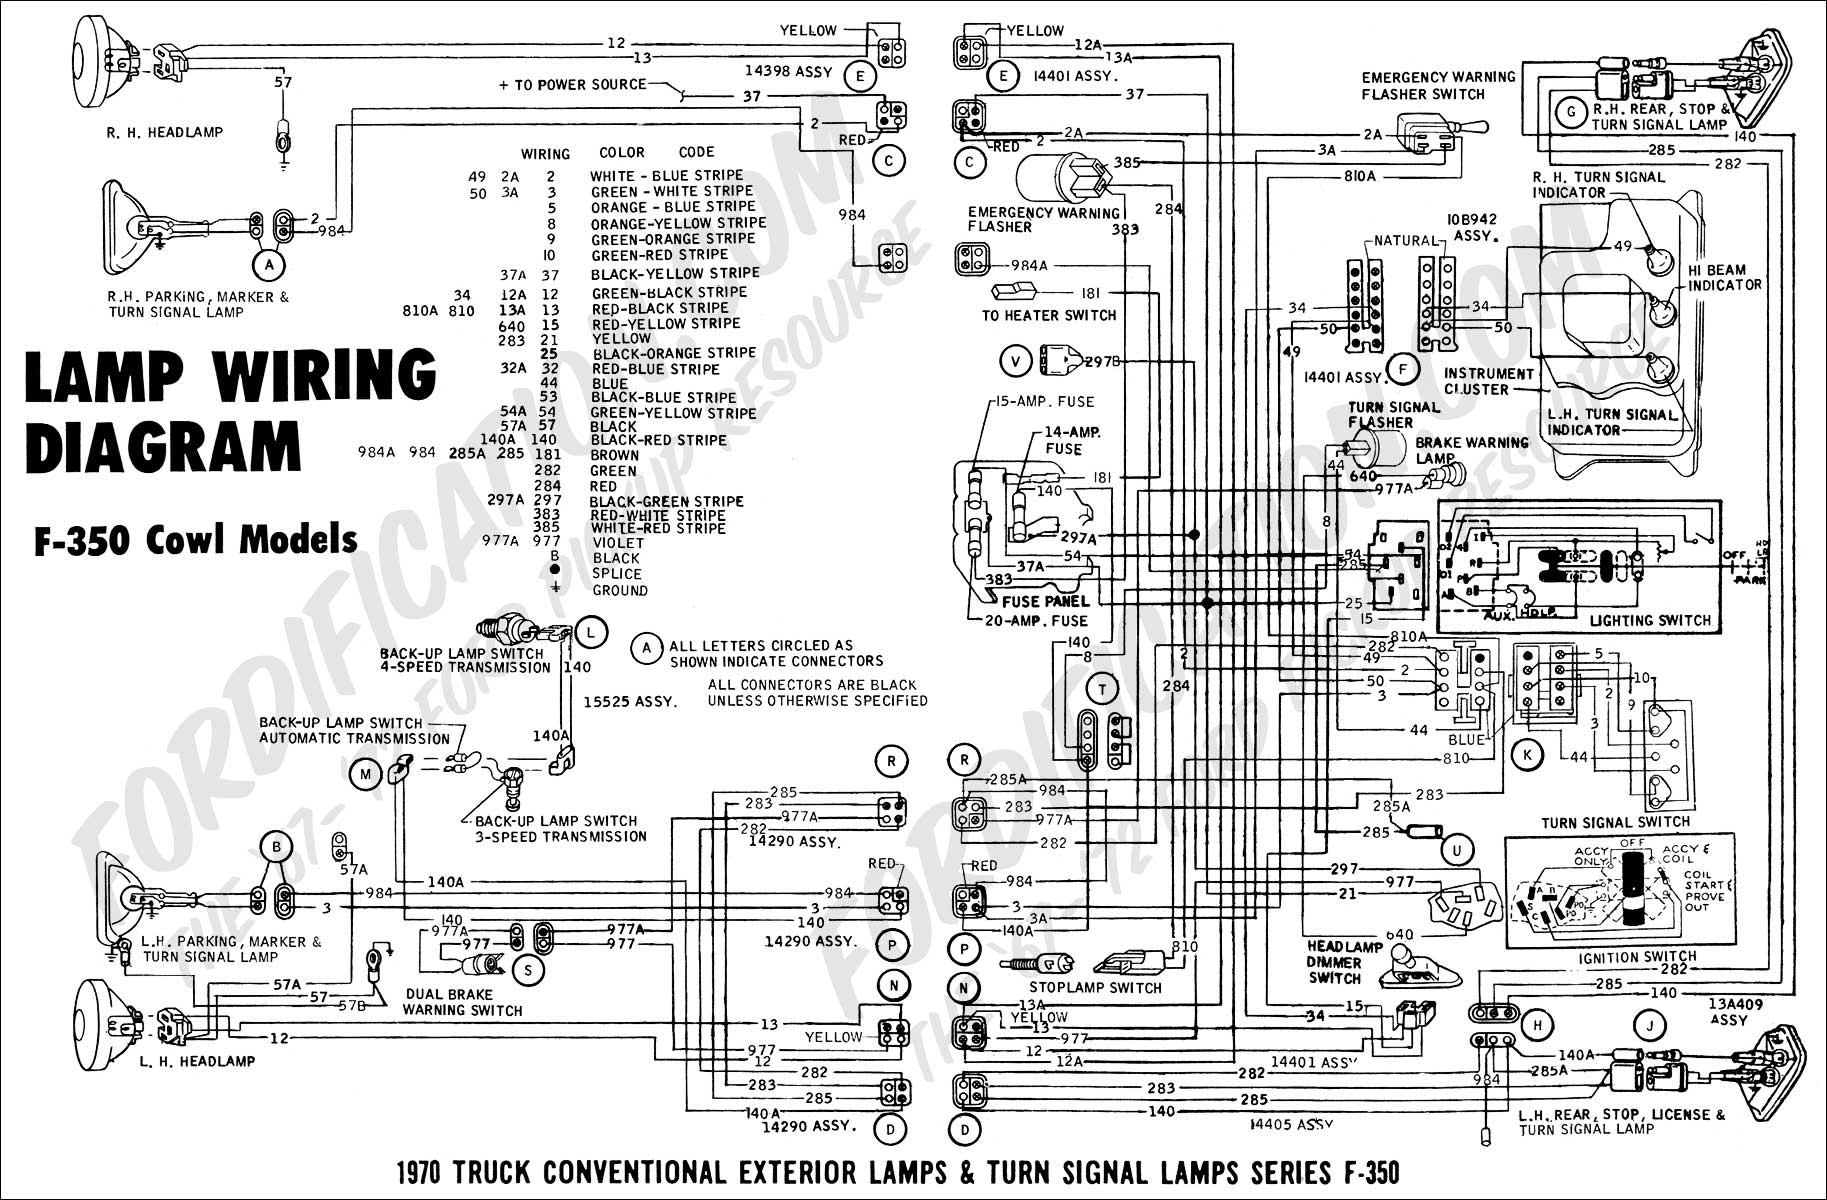 wiring diagram 70F350cowl_lights01?resize=665%2C437 diagrams 412300 2002 ford f150 wiring diagram solved need ford f150 headlight wiring diagram at nearapp.co